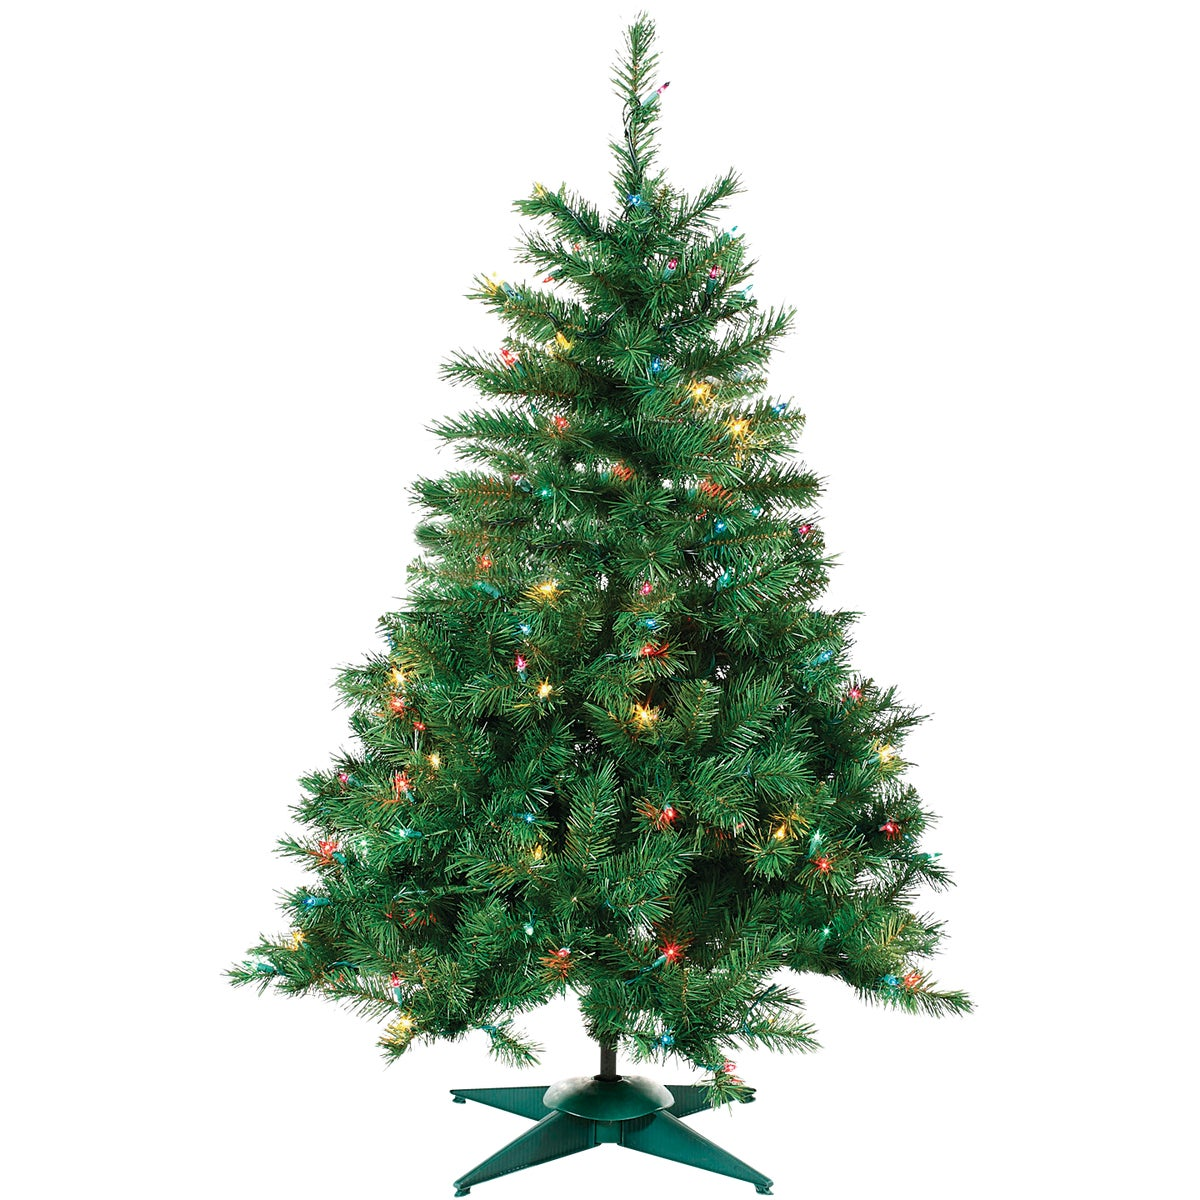 2'P/L COLRAD SPRUCE TREE - 1484-20M by Sterling